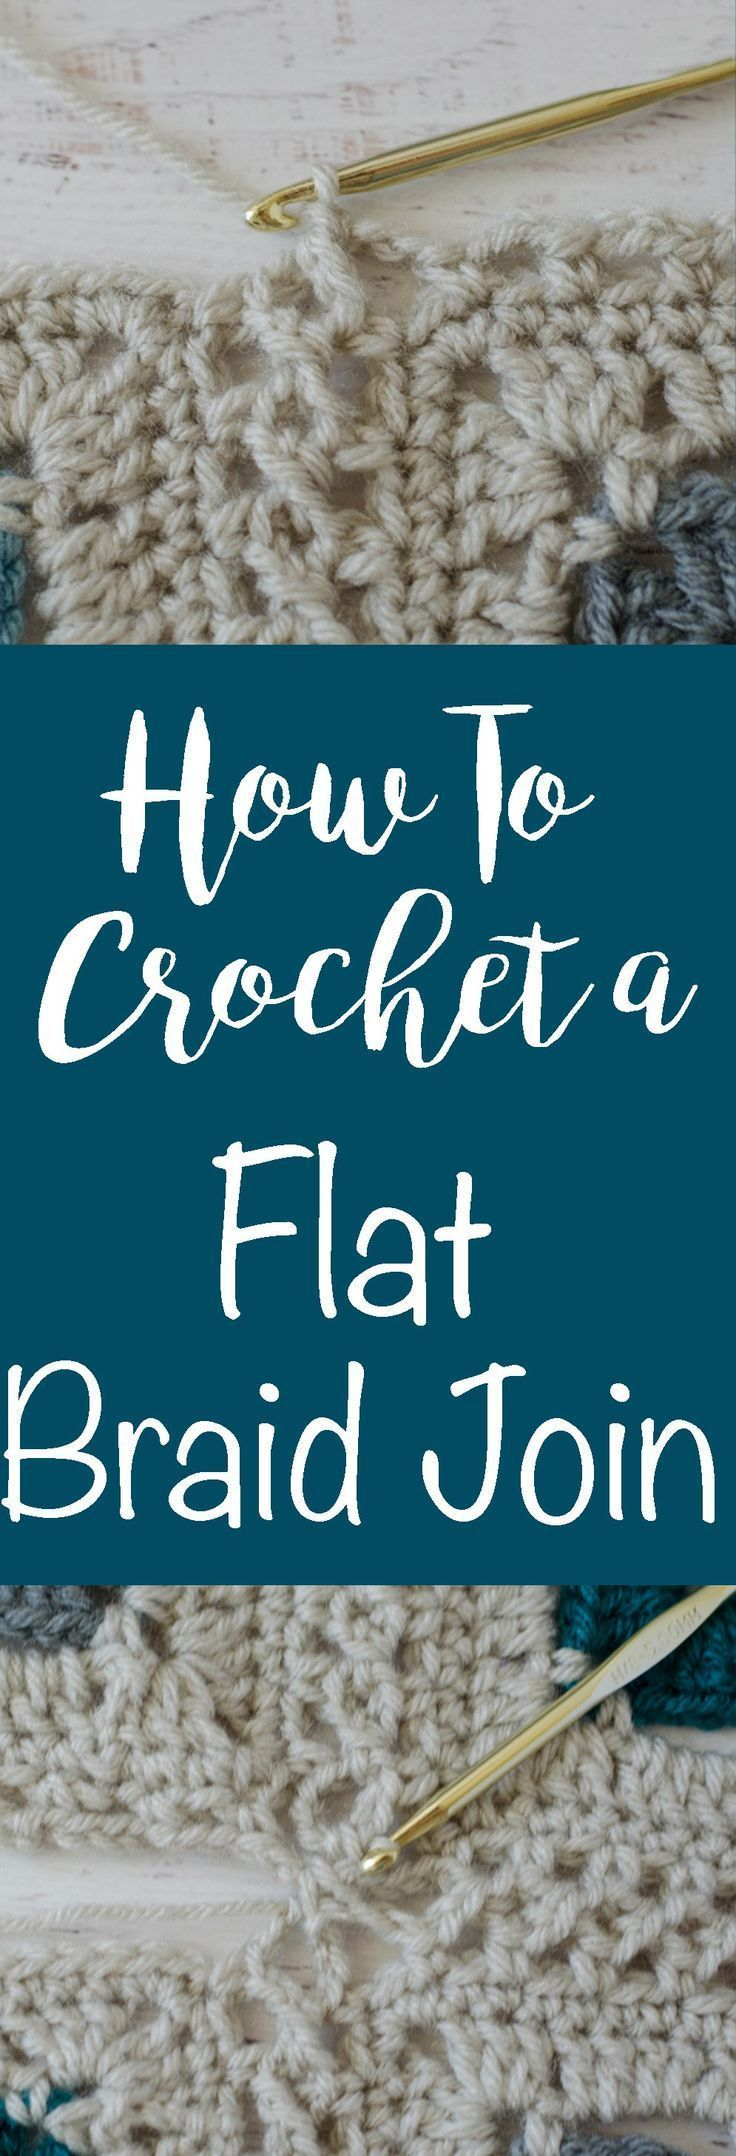 This is amazing! How to crochet a flat braid join